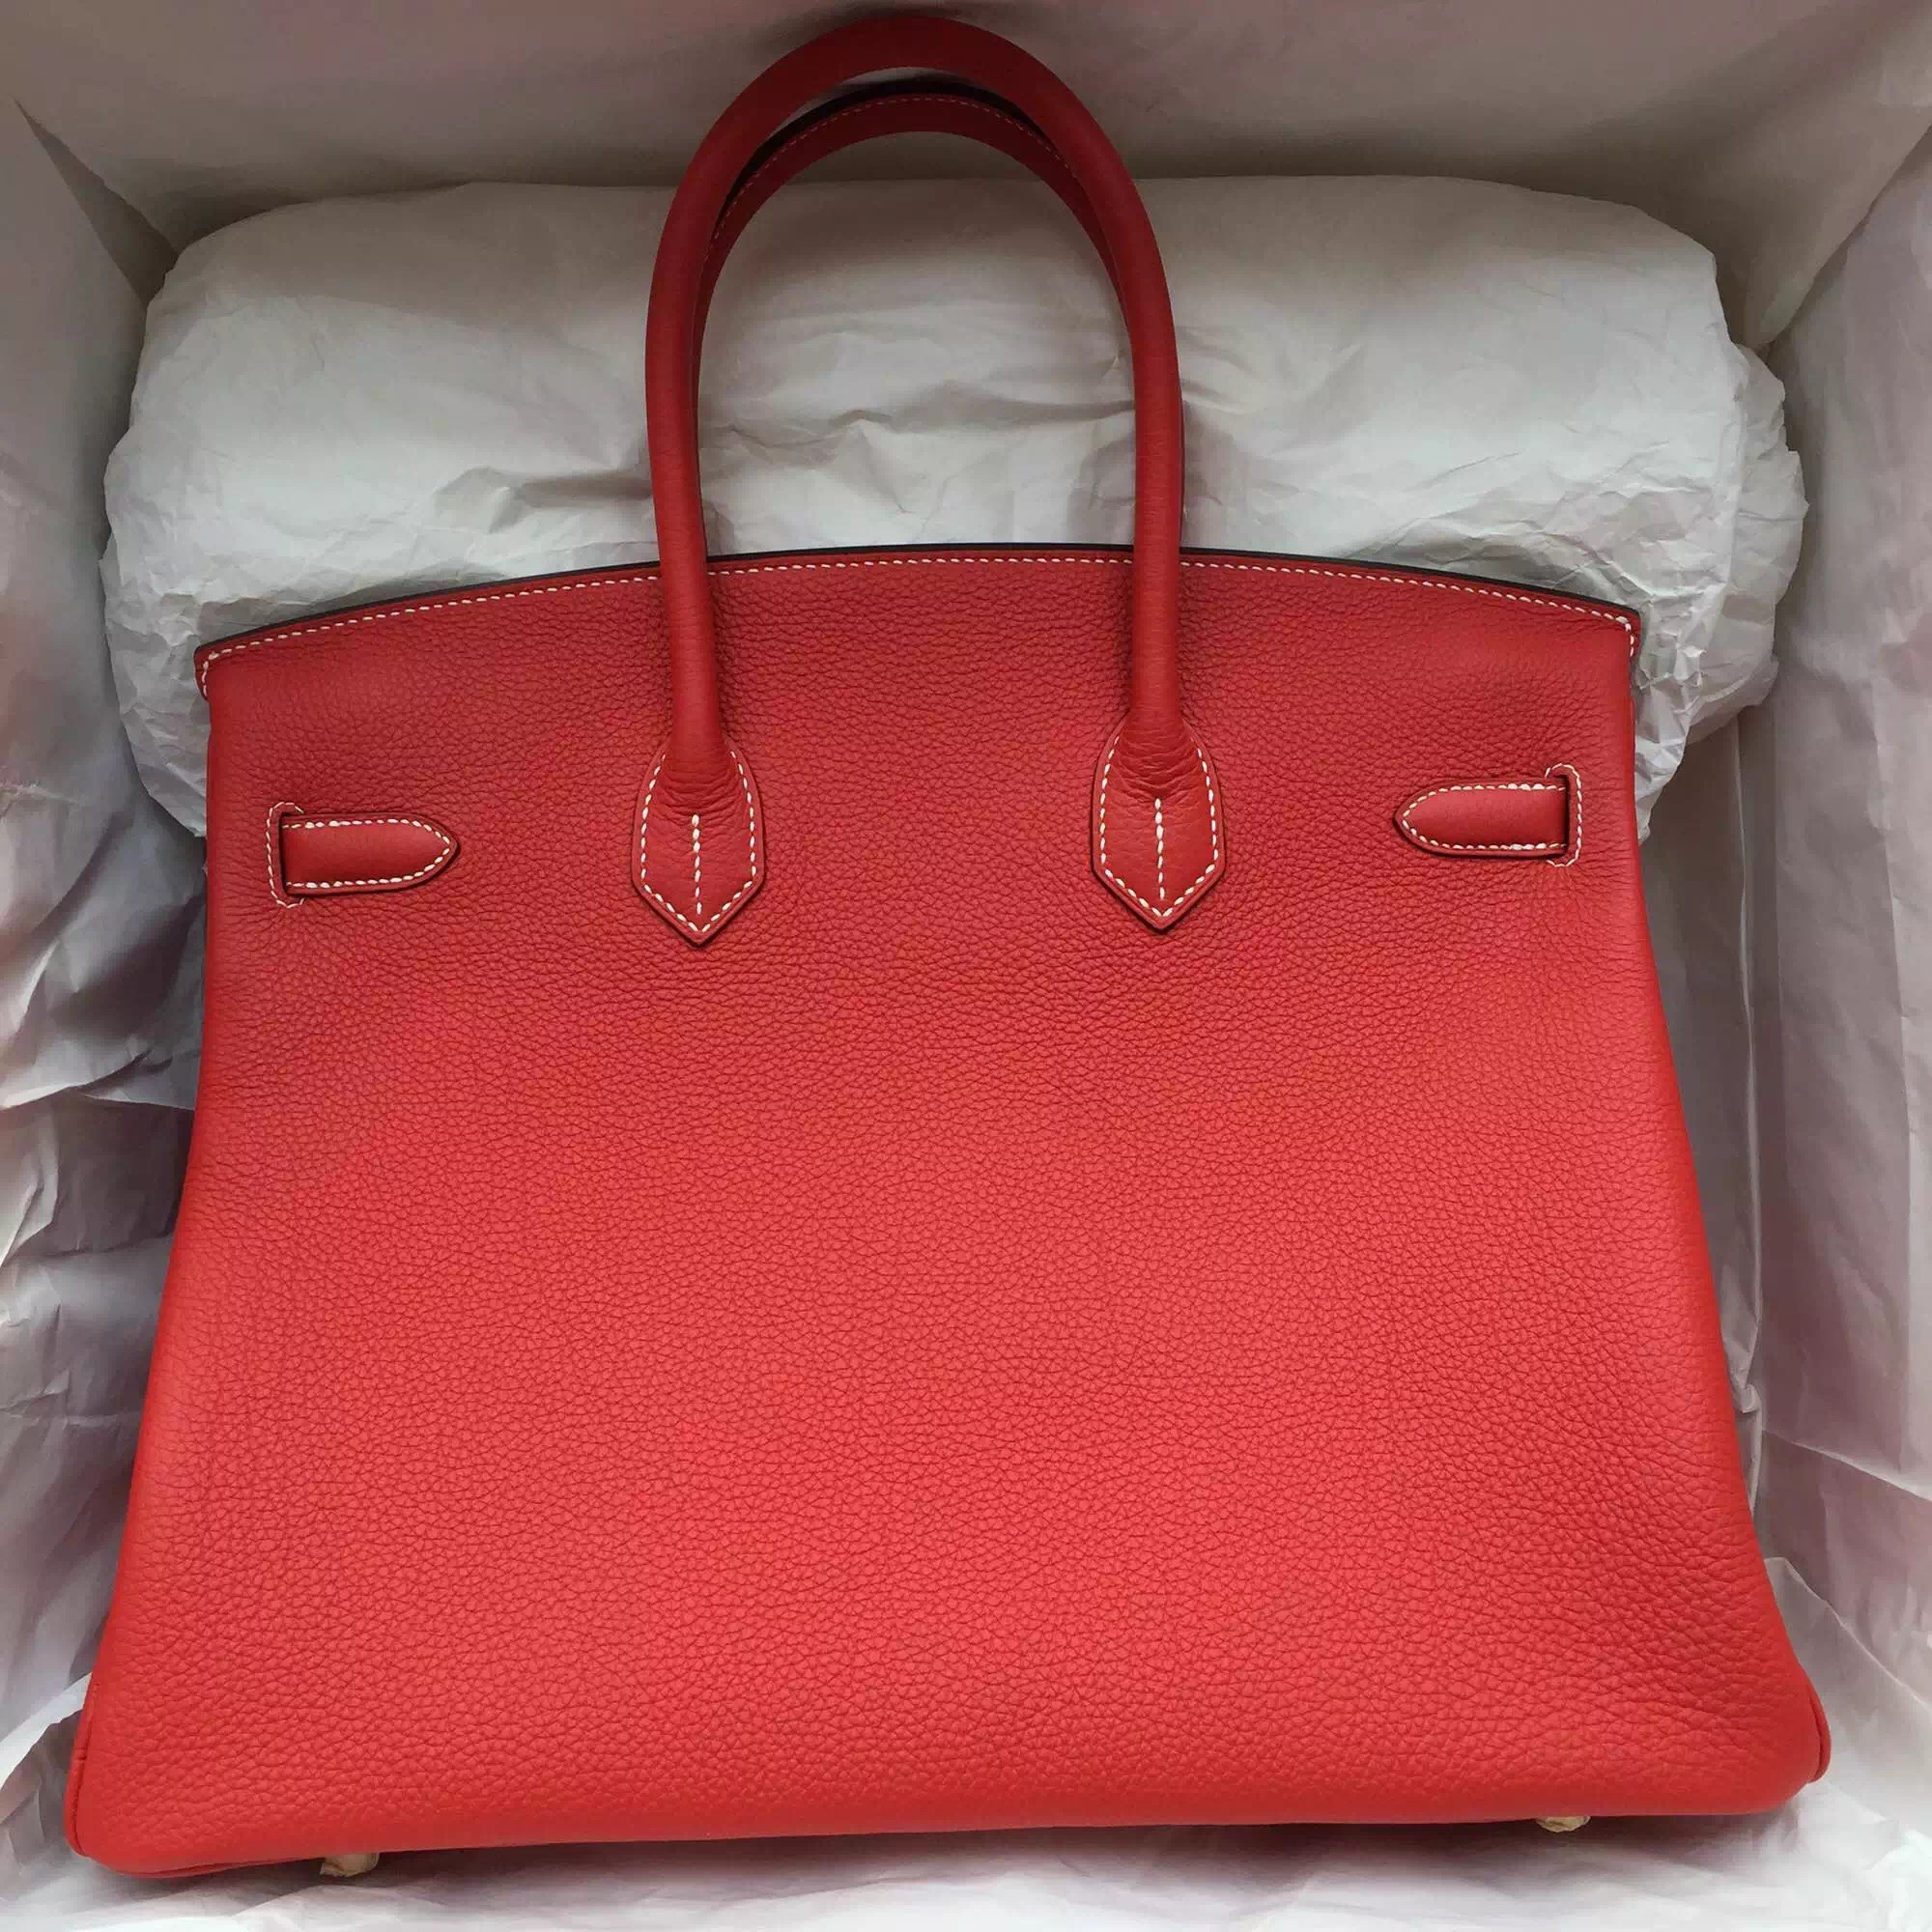 Fashion 35CM Hermes Birkin Bag D5 Geranium Color Togo Leather with White Thread